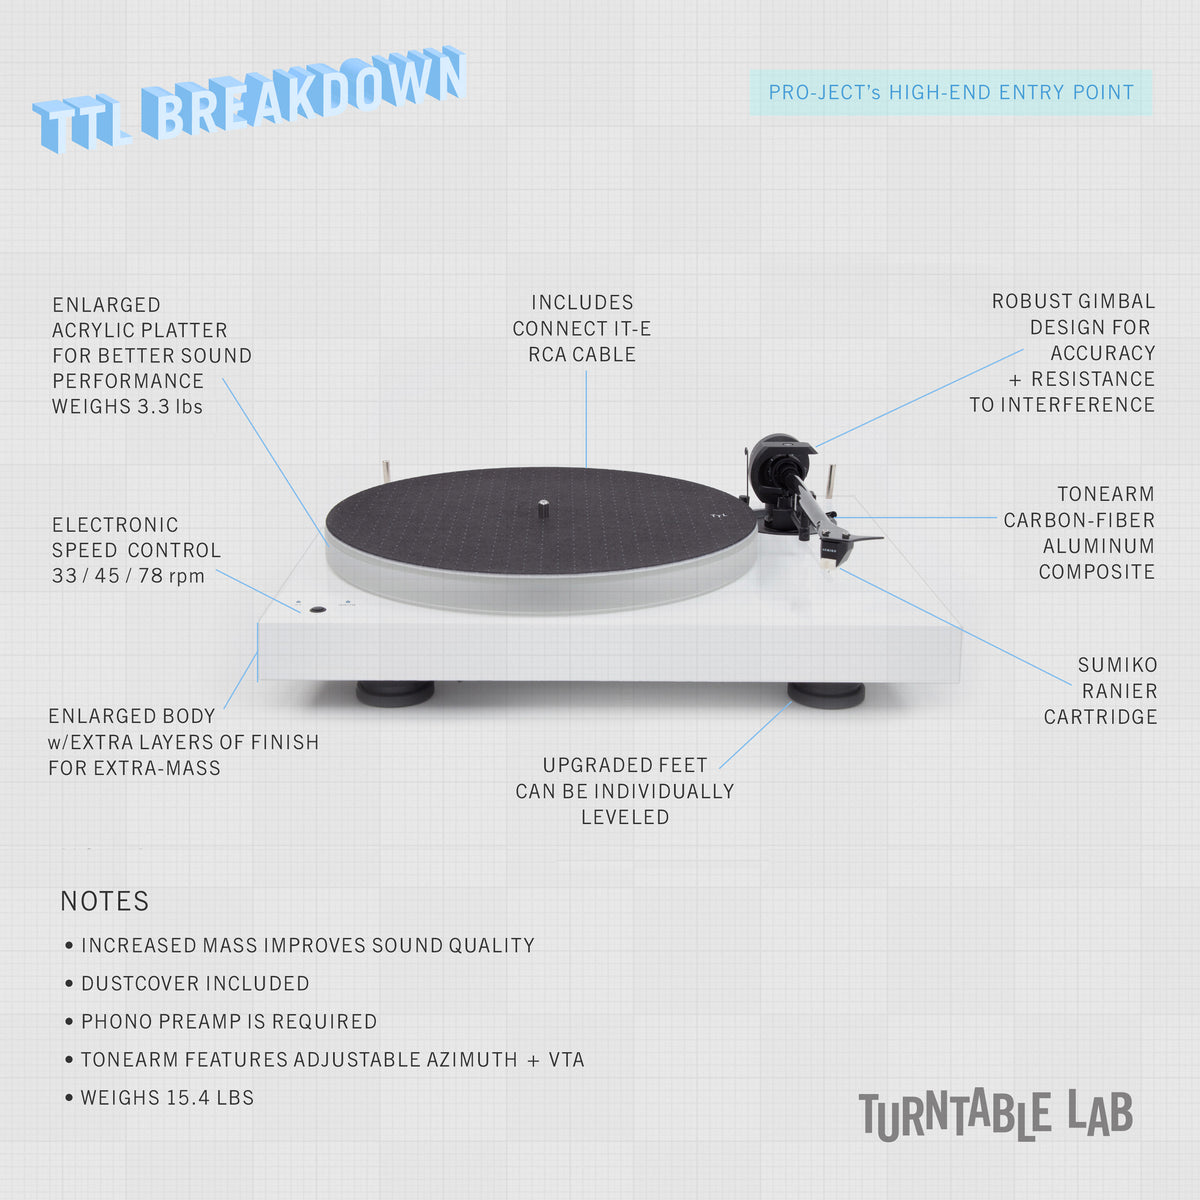 Pro-Ject: X1 Turntable Review